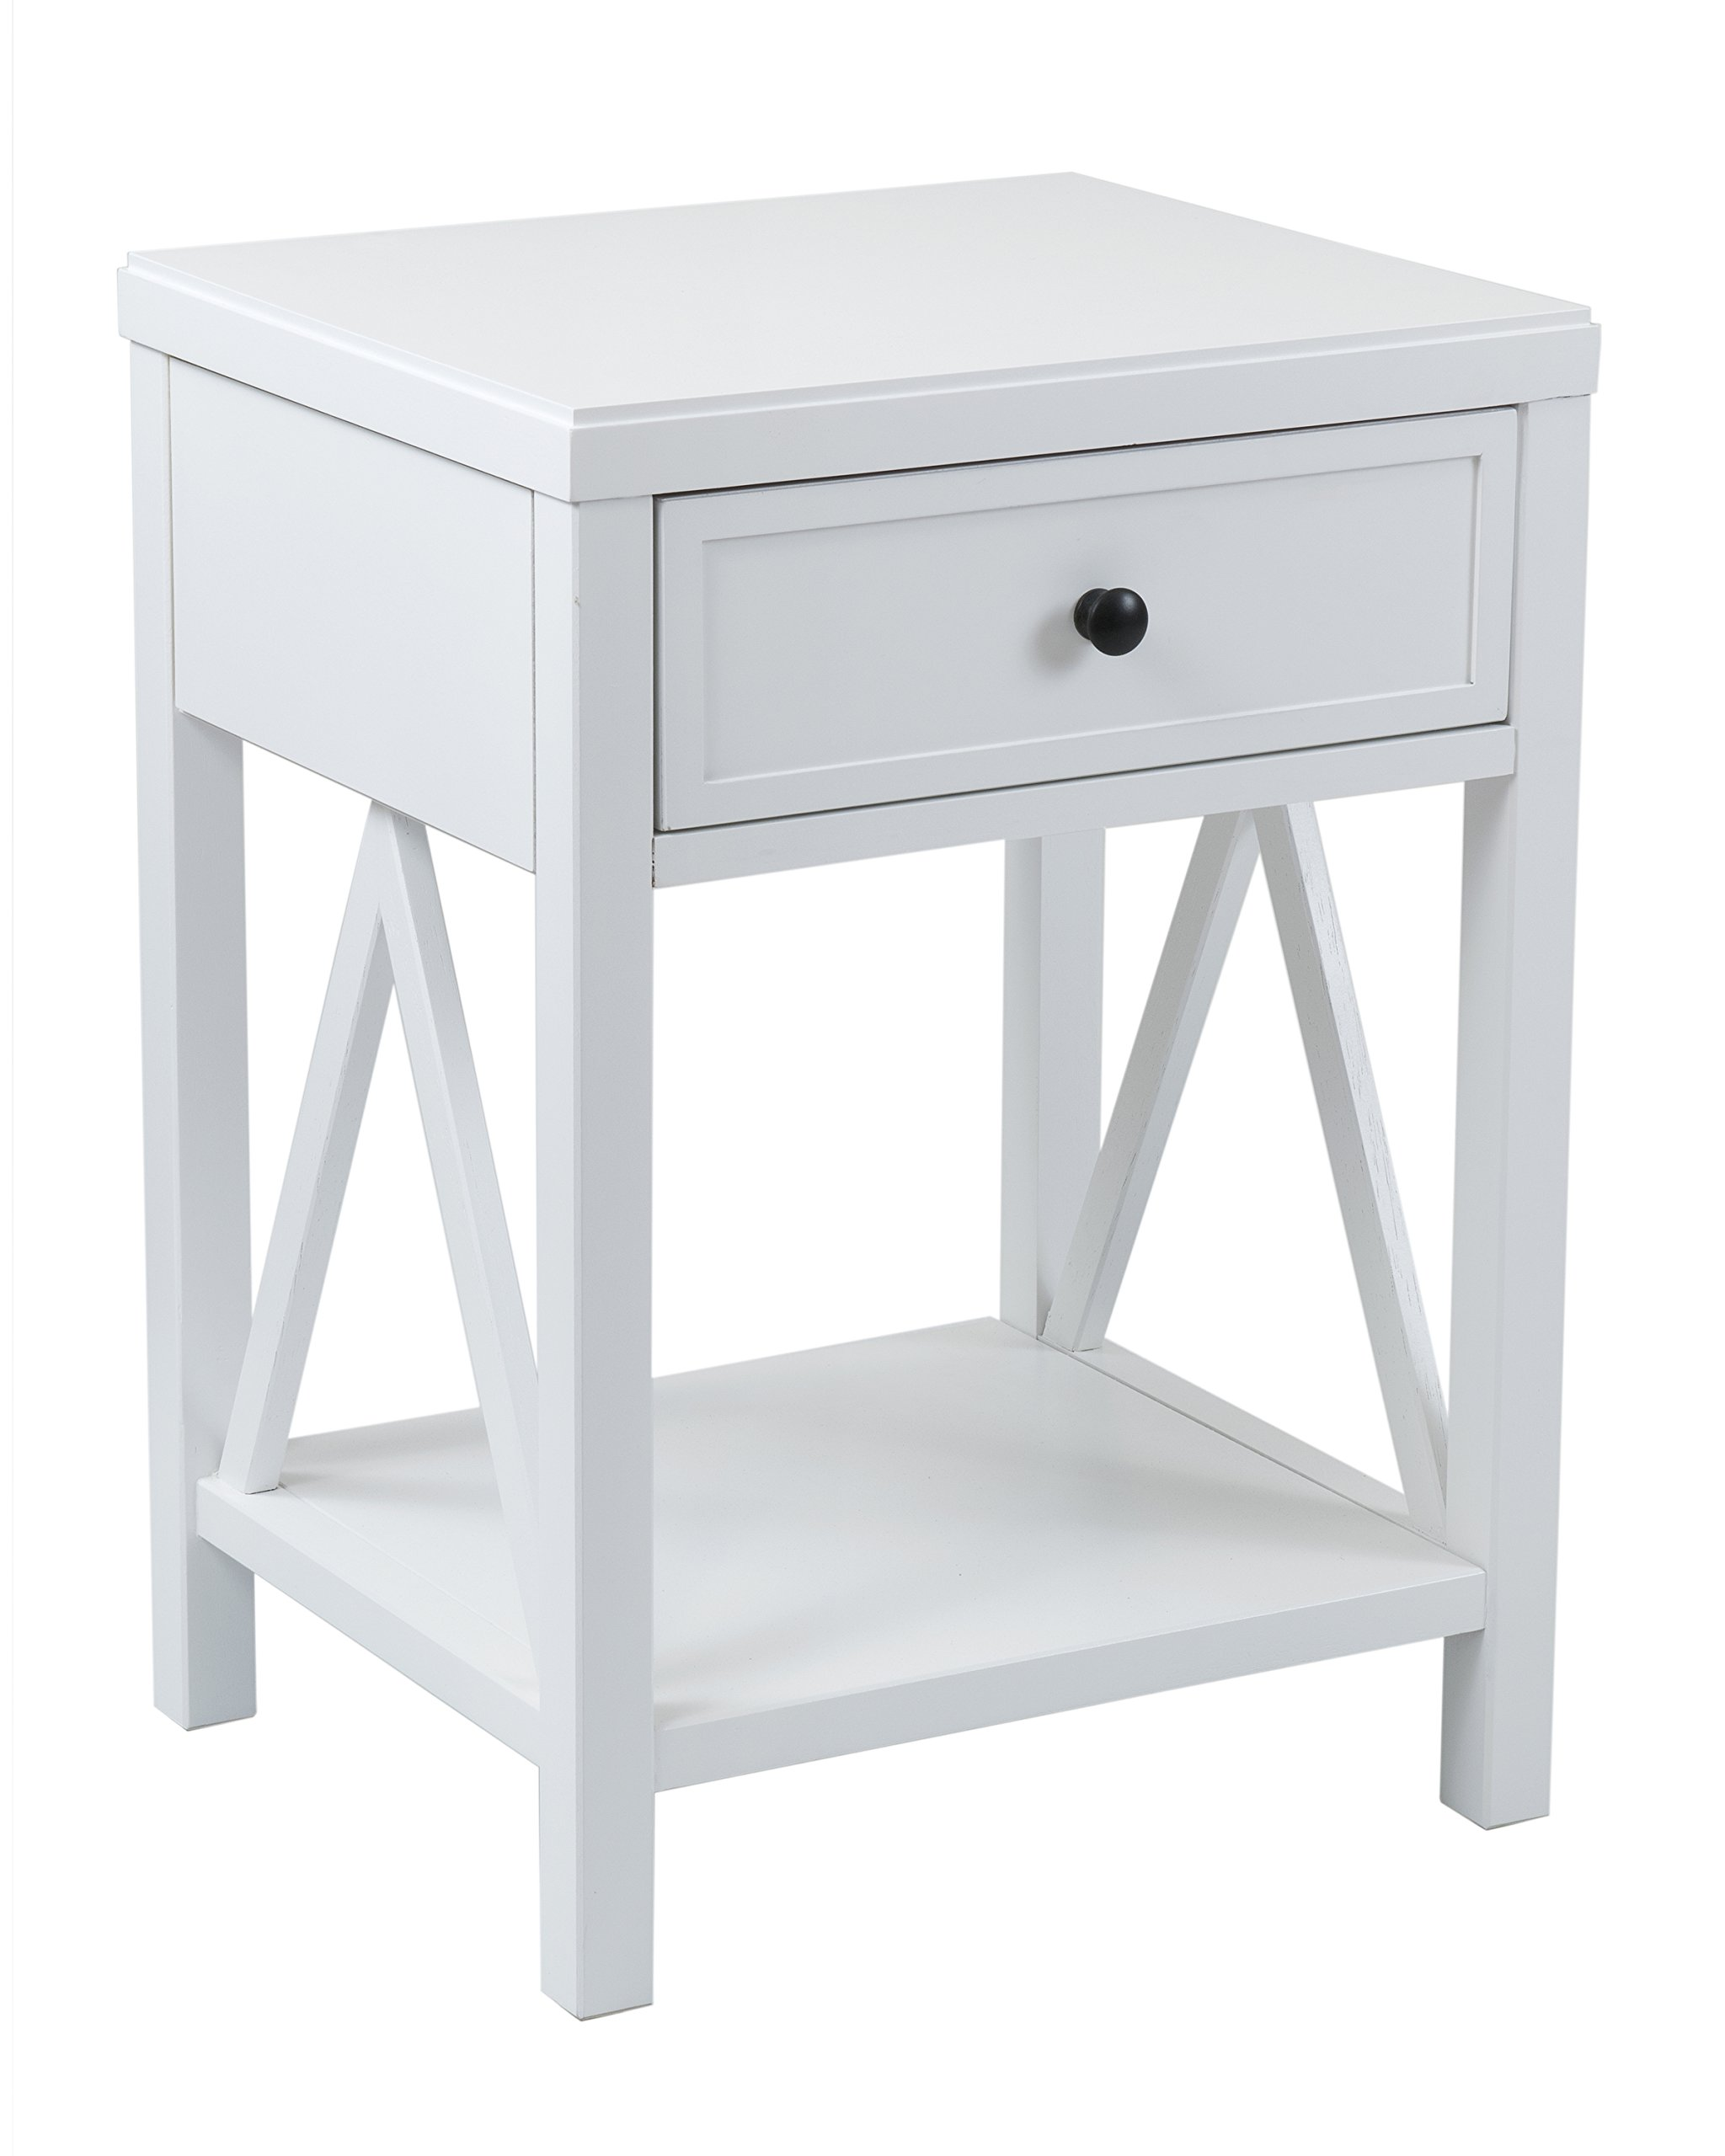 East at Main Wilcox Acacia Wood Square Accent Table, White, (15'' L x 17'' W x 23'' H)